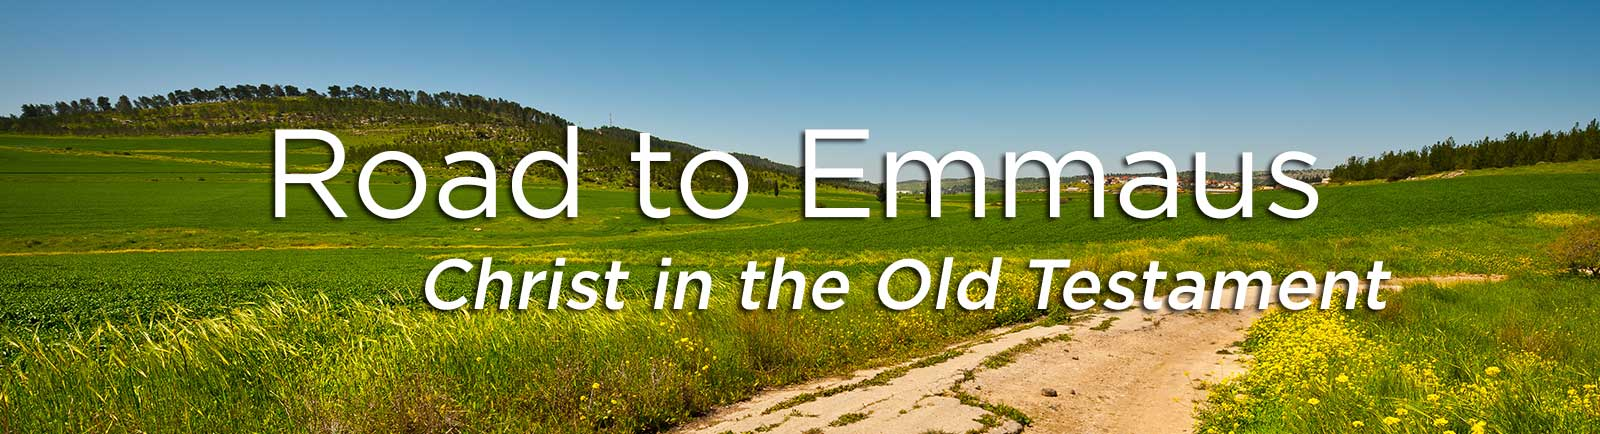 The Road to Emmaus: Christ in the Old Testament